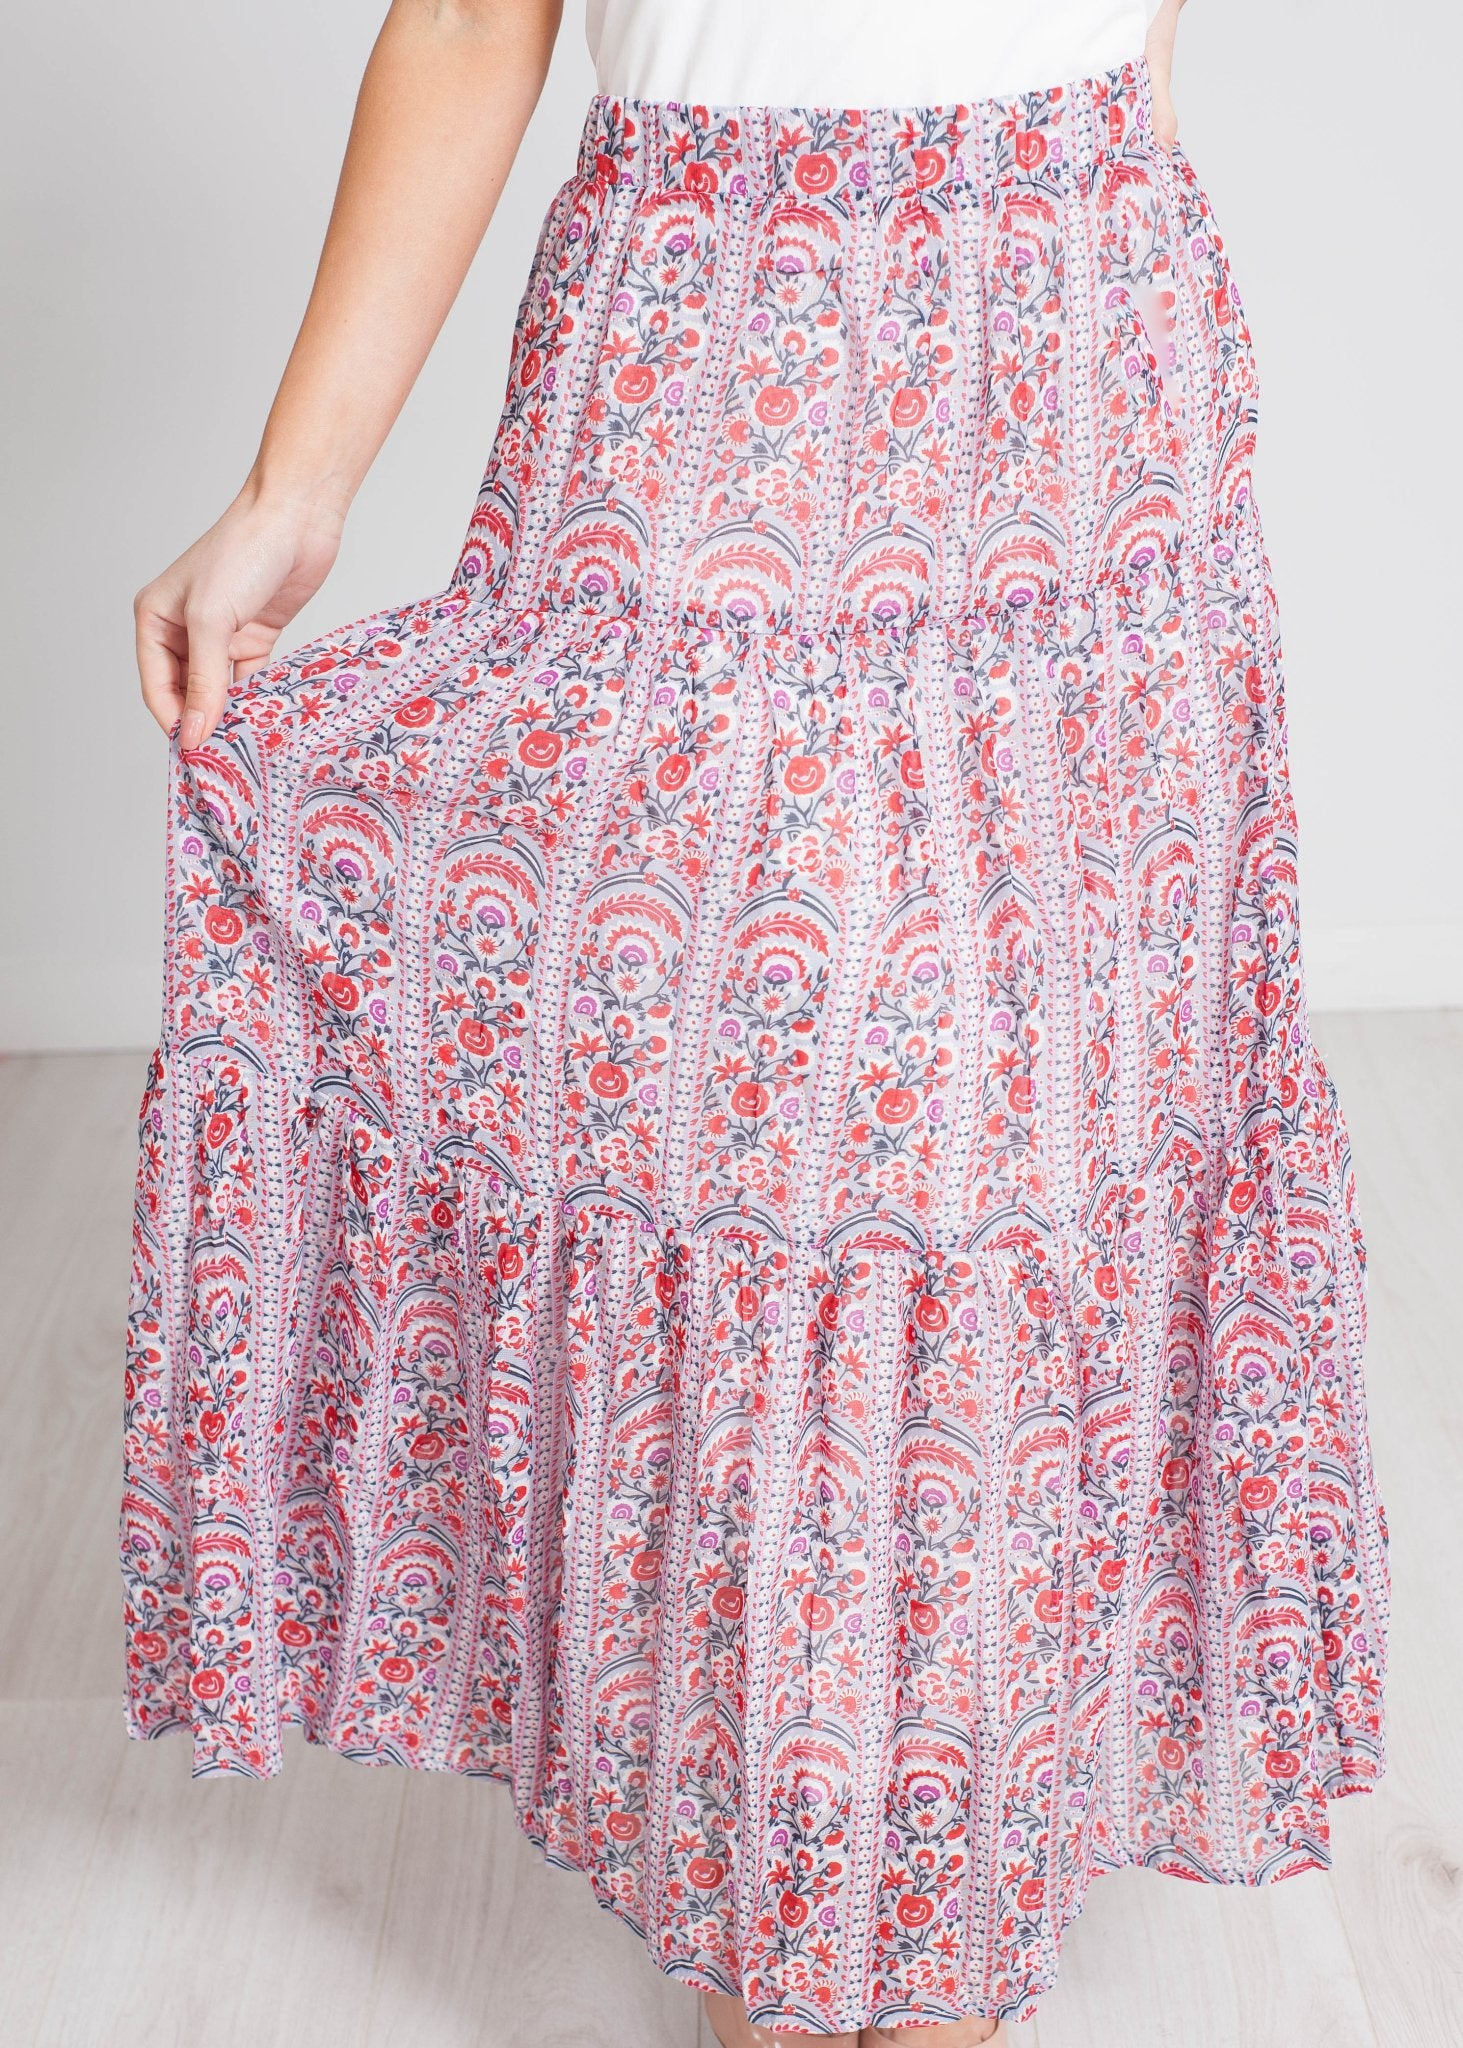 Becca Printed Maxi Skirt In Purple Mix - The Walk in Wardrobe